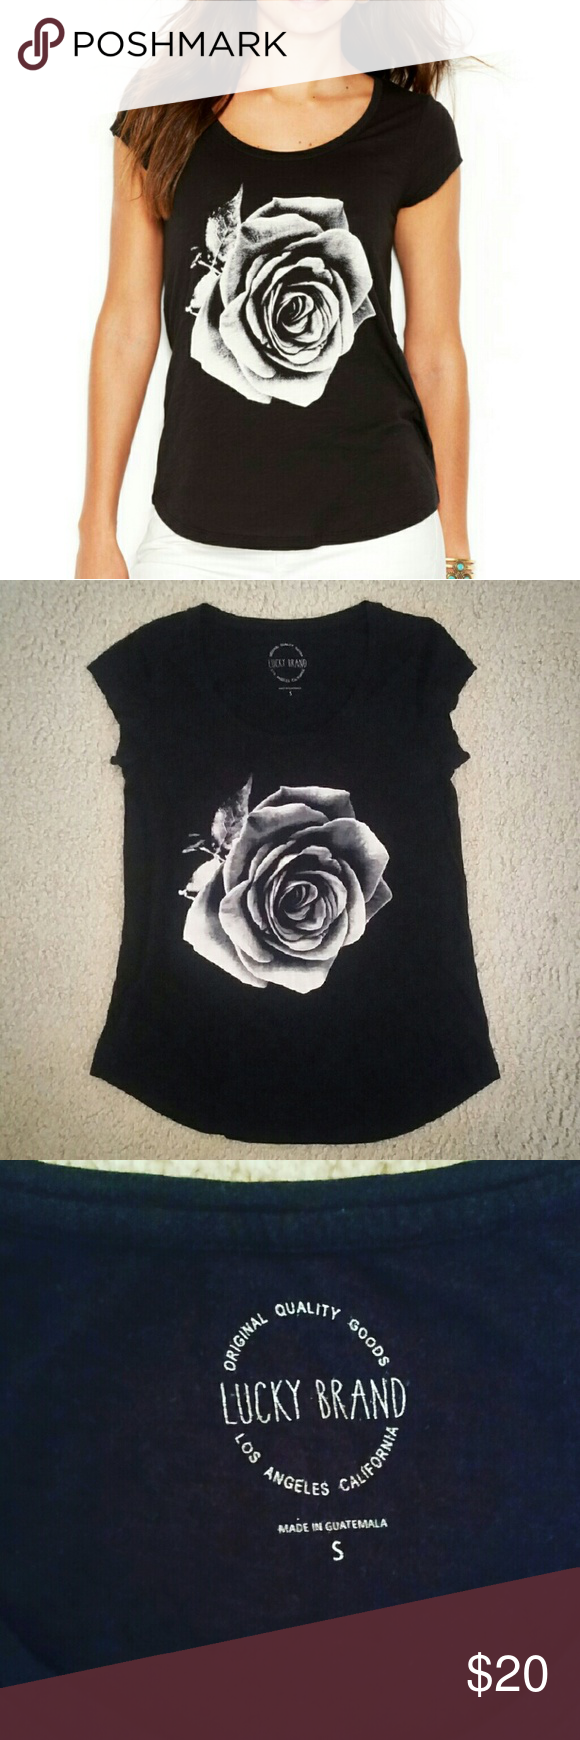 Lucky Brand - Rose Tshirt Authentic. Excellent used condition. Super cute and comfortable. Black tshirt with white/grey rose design. Runs a little big but I think it's supposed to be a loose fit. Lucky Brand Tops Tees - Short Sleeve